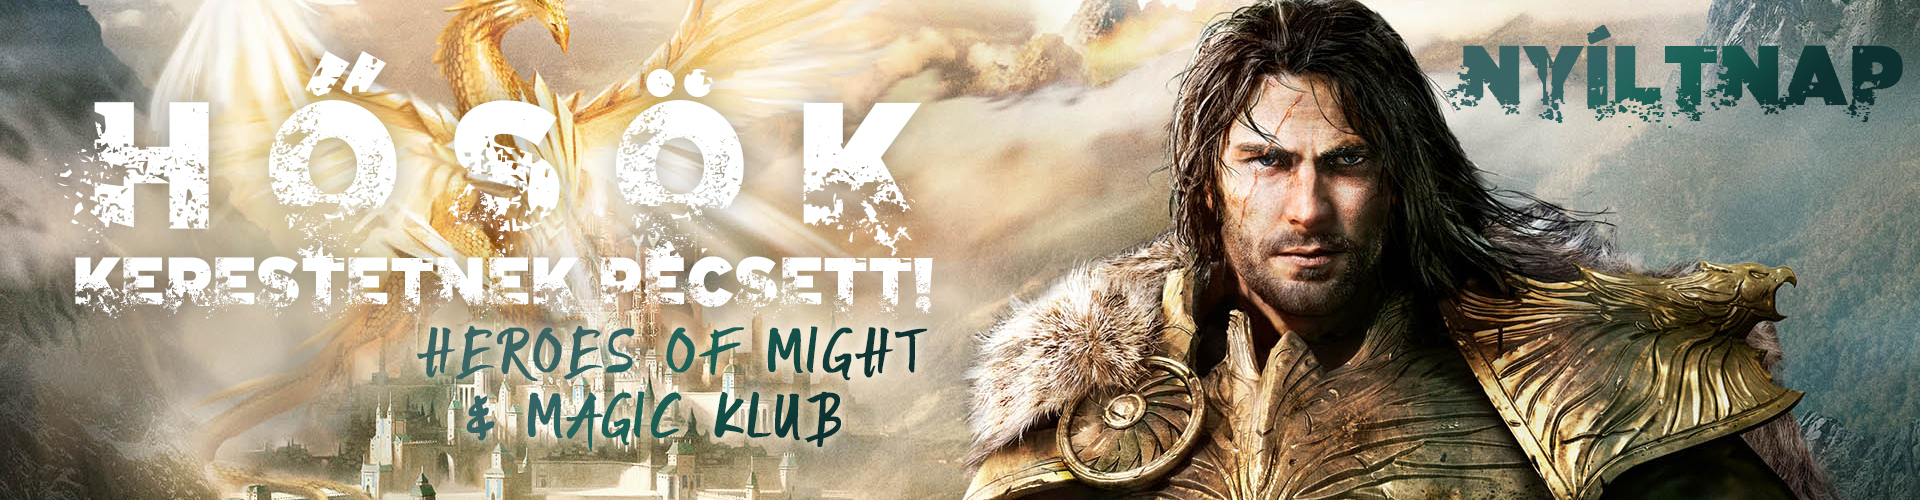 Hősök kerestetnek Pécsett! Heroes of Might & Magic klub nyíltnap